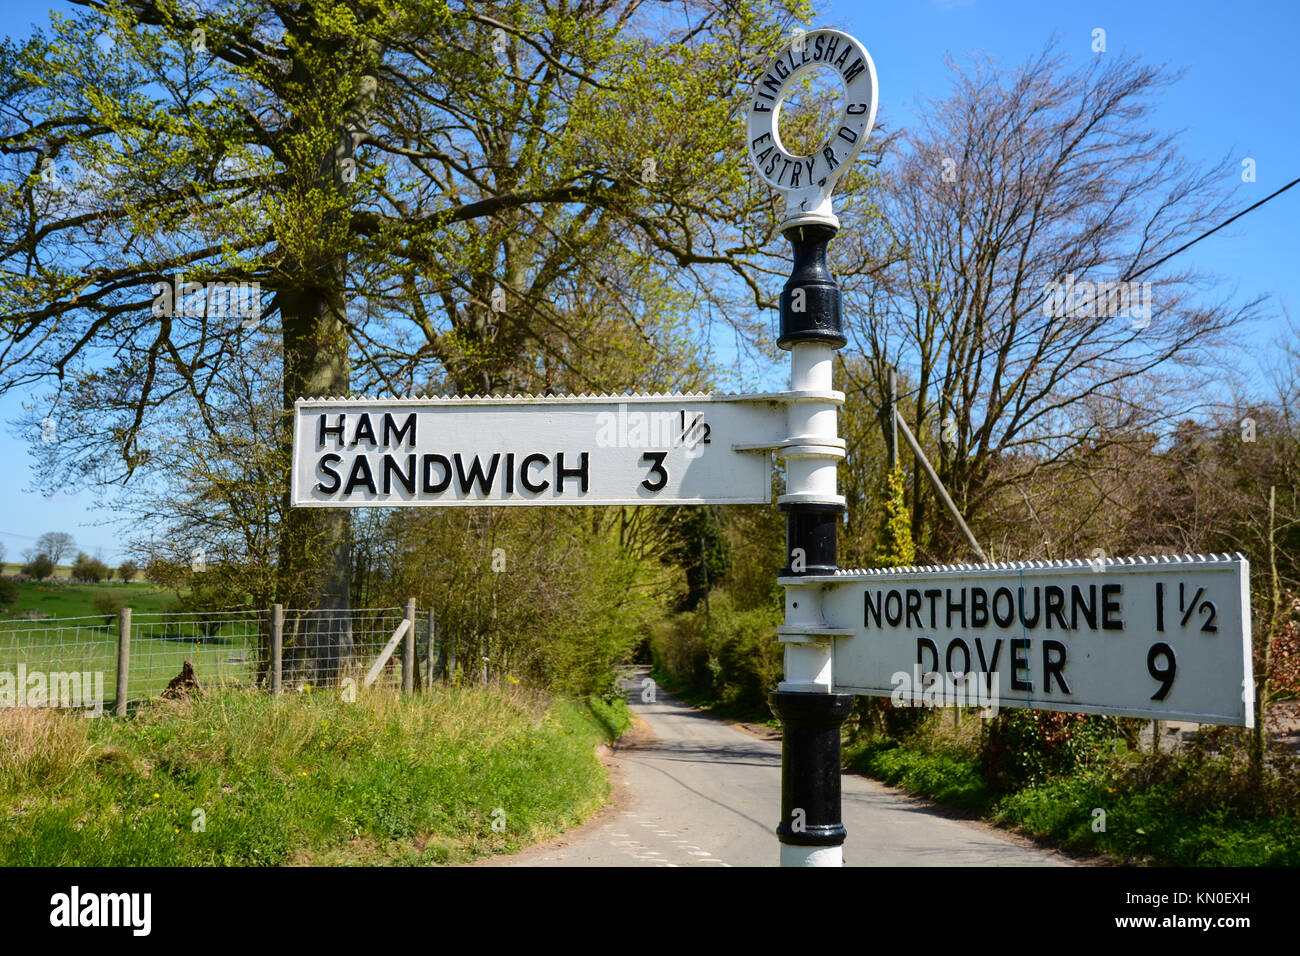 Old Fashioned Signpost High Resolution Stock Photography and Images - Alamy